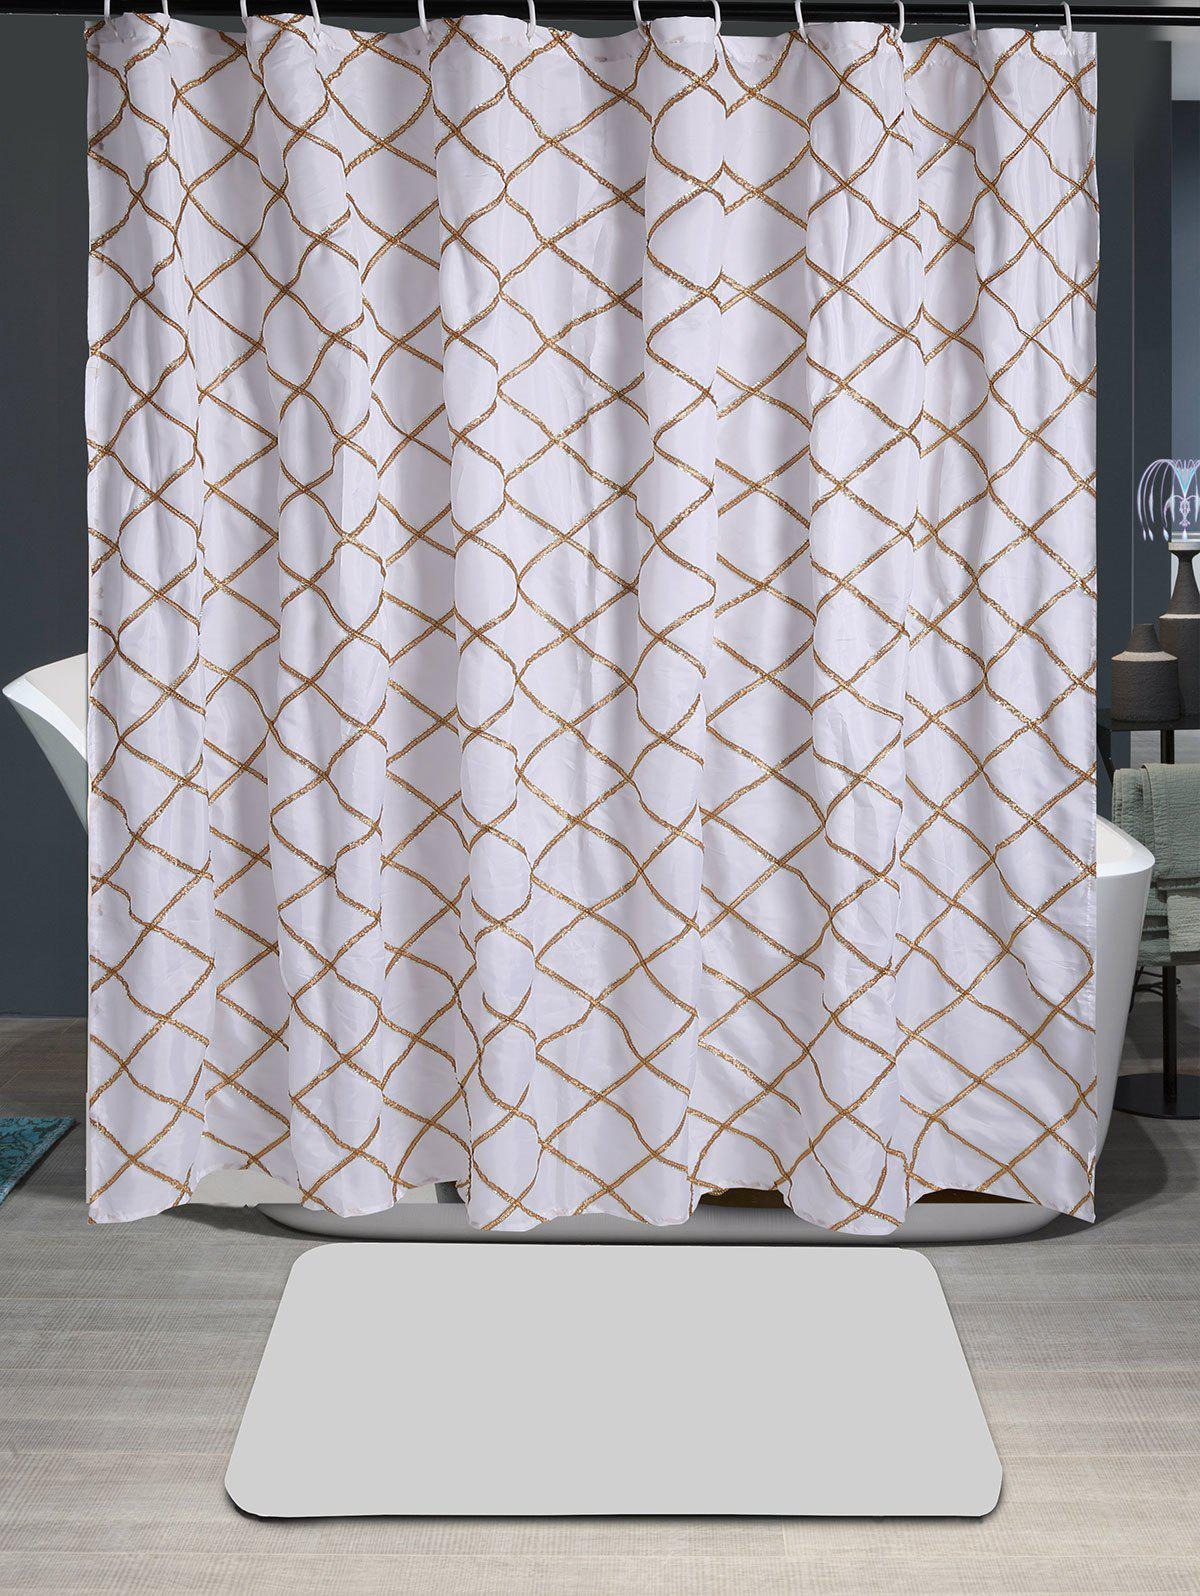 Plaid Laciness Waterproof Fabric Shower Curtain - GOLDEN W71 INCH * L79 INCH